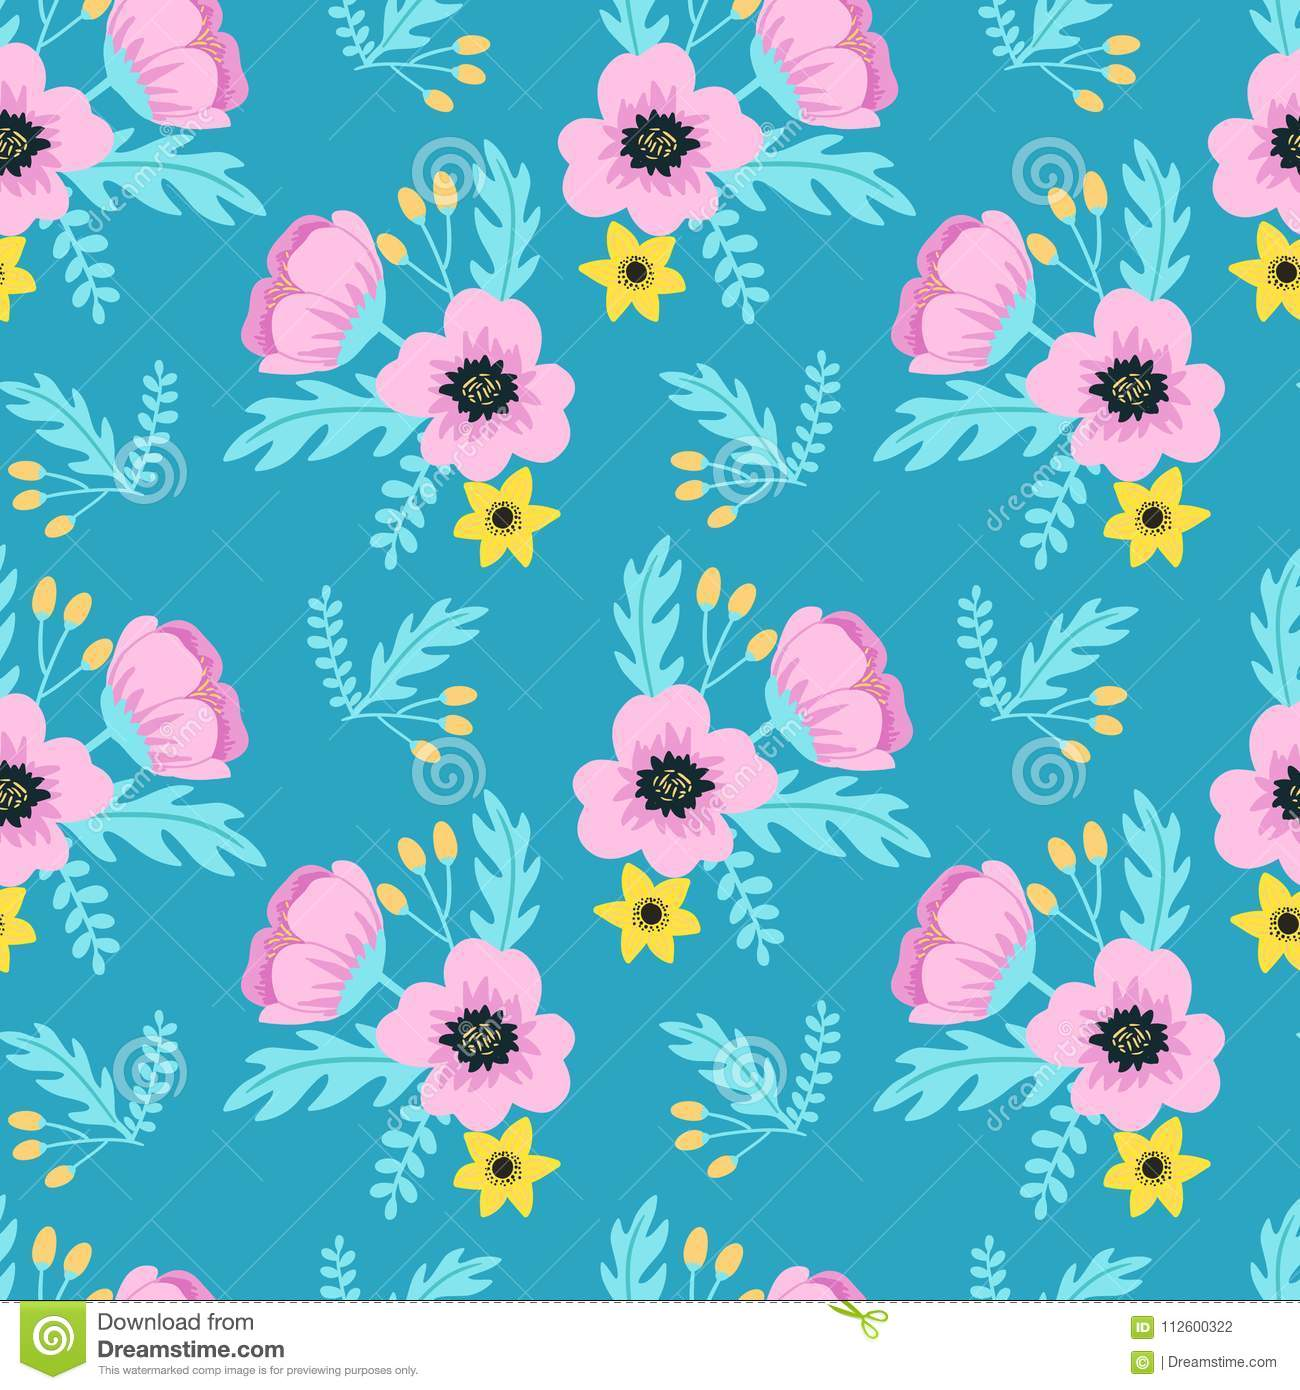 Elegant Spring Colorful Seamless Floral Pattern With Pink And Yellow